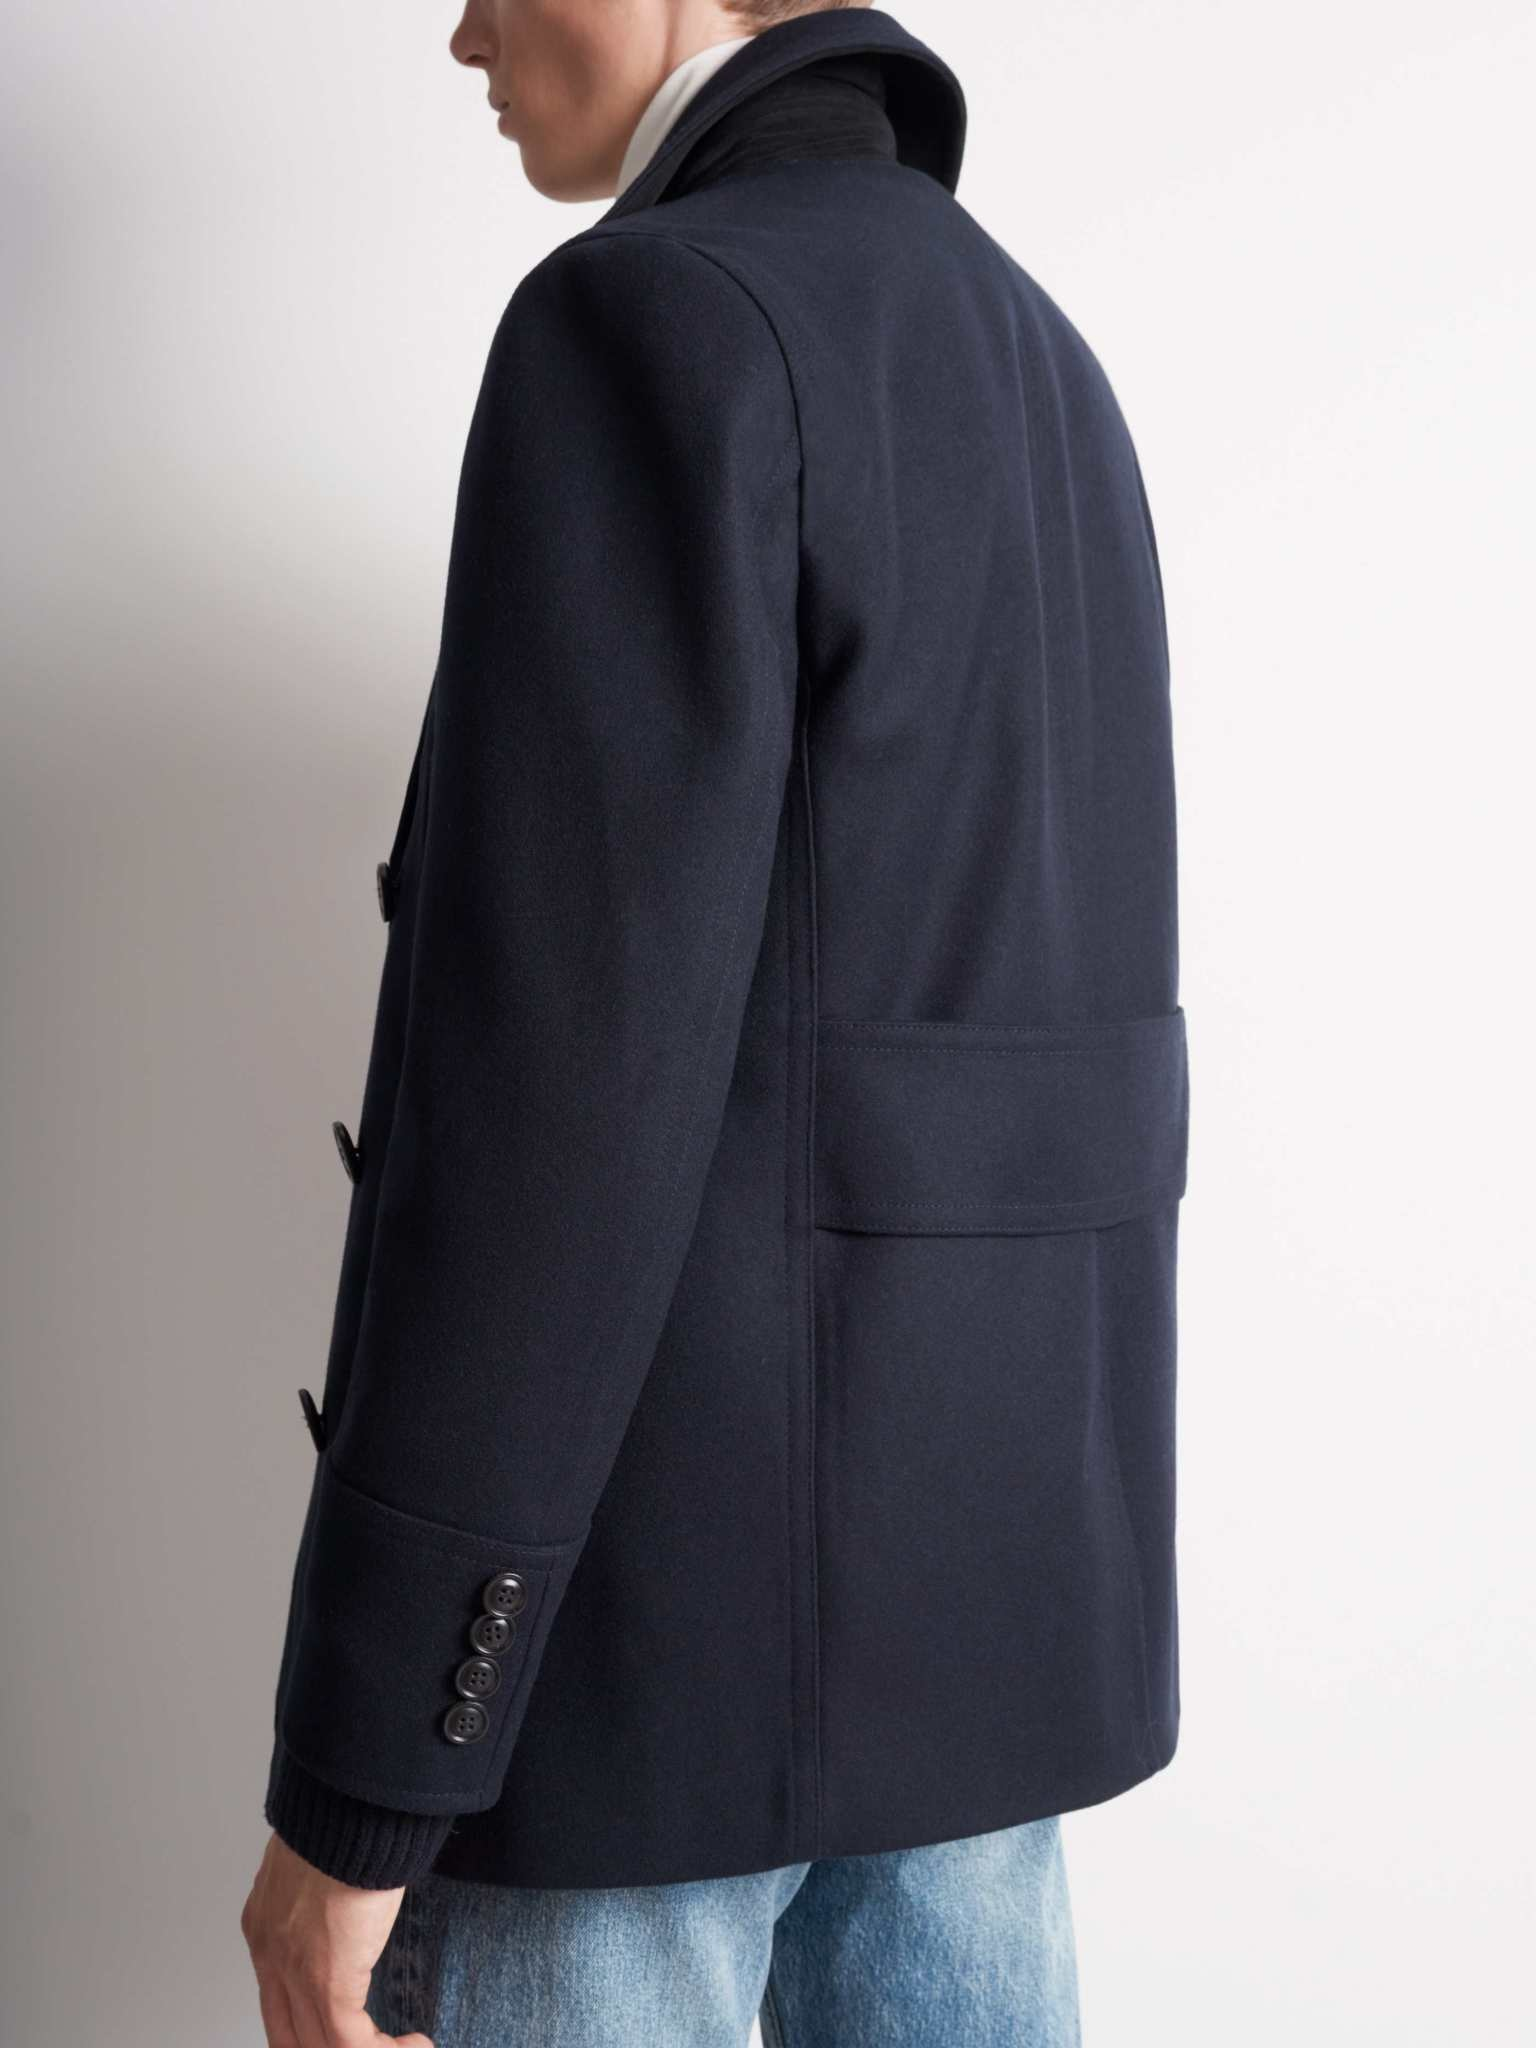 Thielo Wool Peacoat Light Ink Blue-5